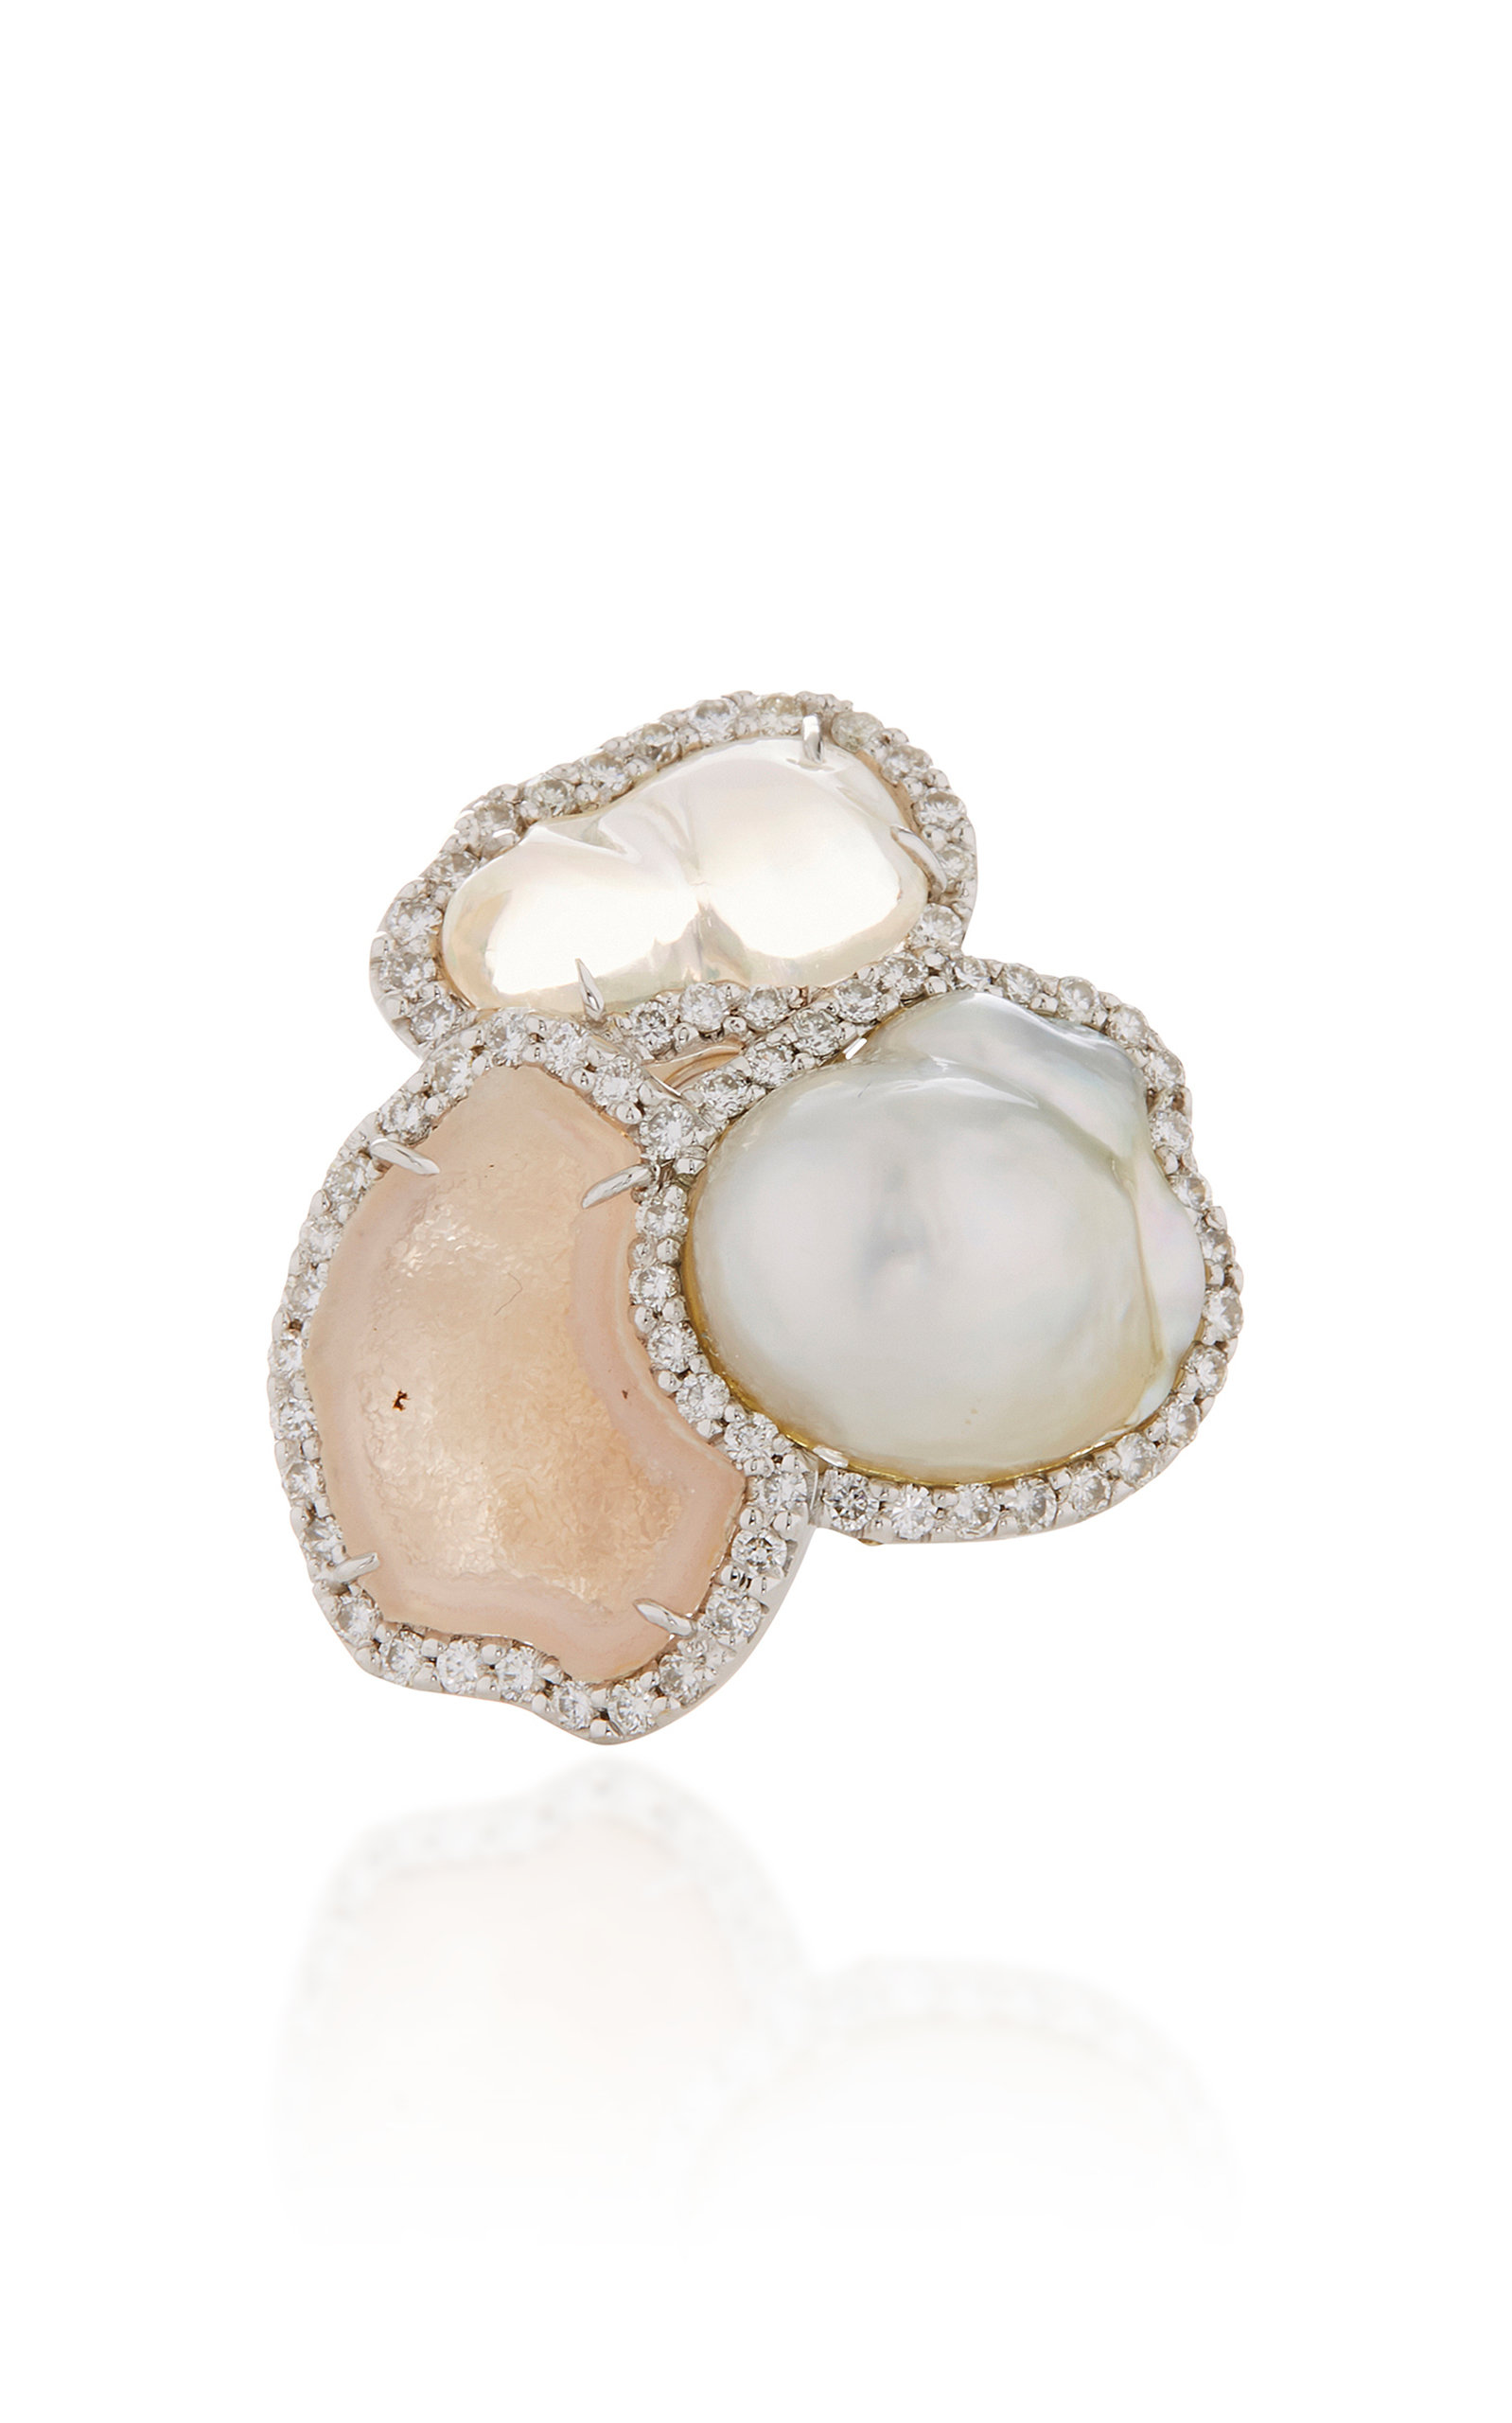 KIMBERLY MCDONALD ONE-OF-A-KIND PINK GEODE BAROQUE PEARL AND MEXICAN WATER OPAL RING WITH DIAMONDS SET IN 18K WHITE GO